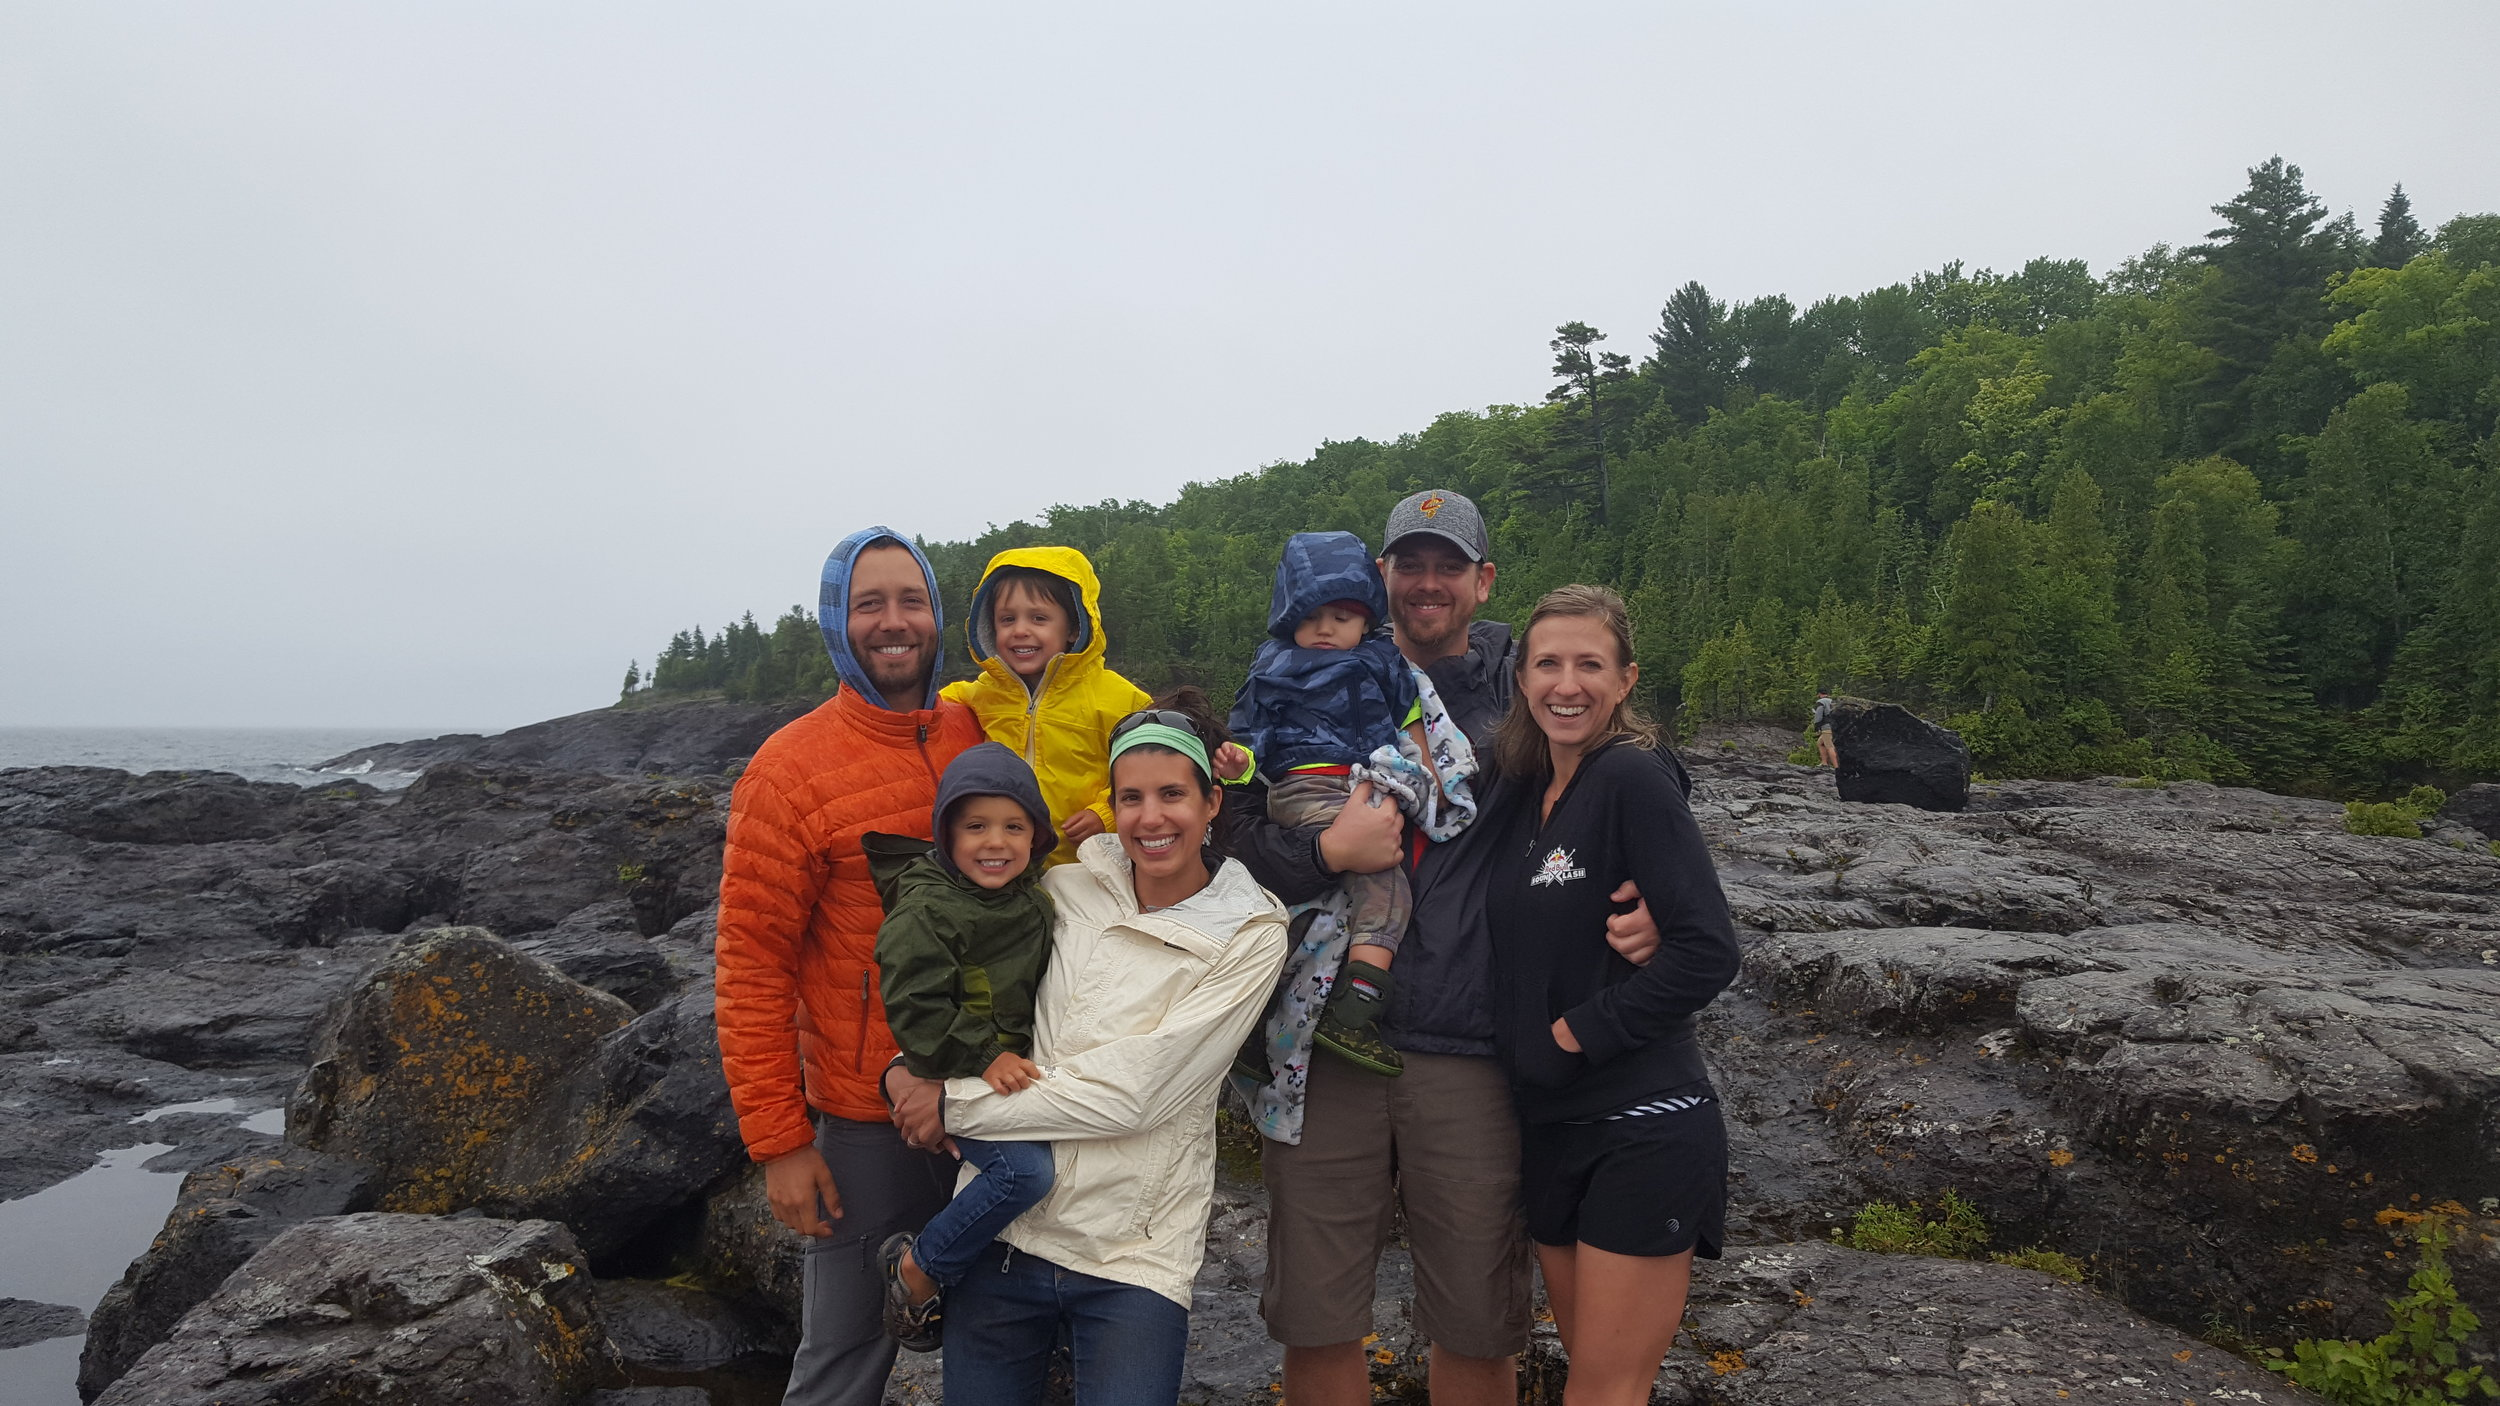 This amazing family (The Armours), who we haven't seen in 10 years, invited us to their home and showed us around the U.P. of Michigan. Wow, it's beautiful, even on a rainy, 55-degree day. Thank you Jamie for making us look like total wusses with the shorts while we're in down jackets.